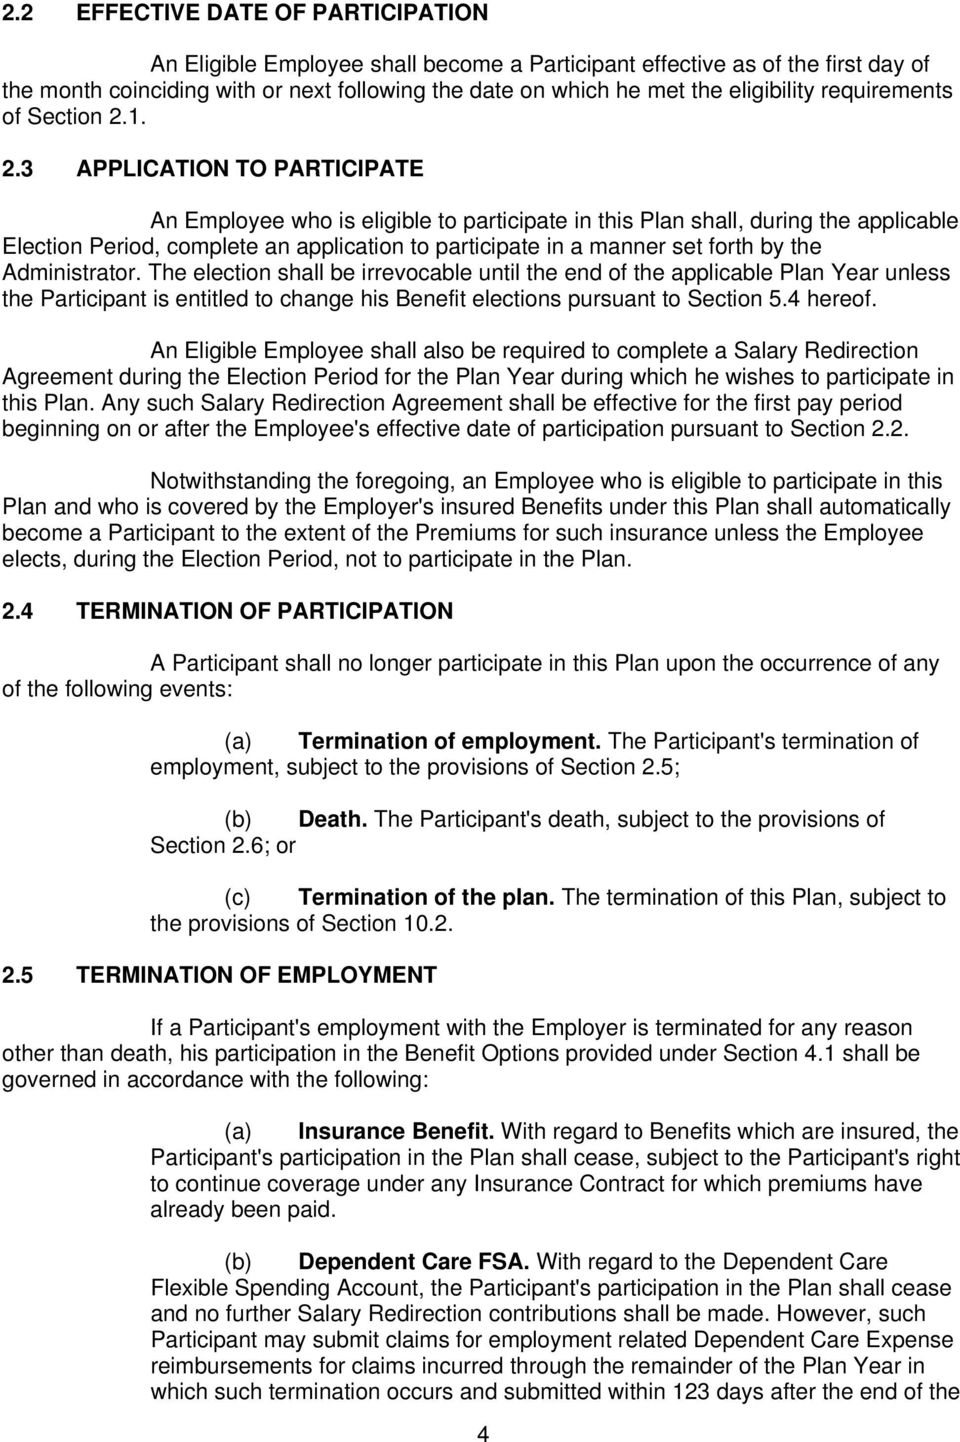 1. 2.3 APPLICATION TO PARTICIPATE An Employee who is eligible to participate in this Plan shall, during the applicable Election Period, complete an application to participate in a manner set forth by